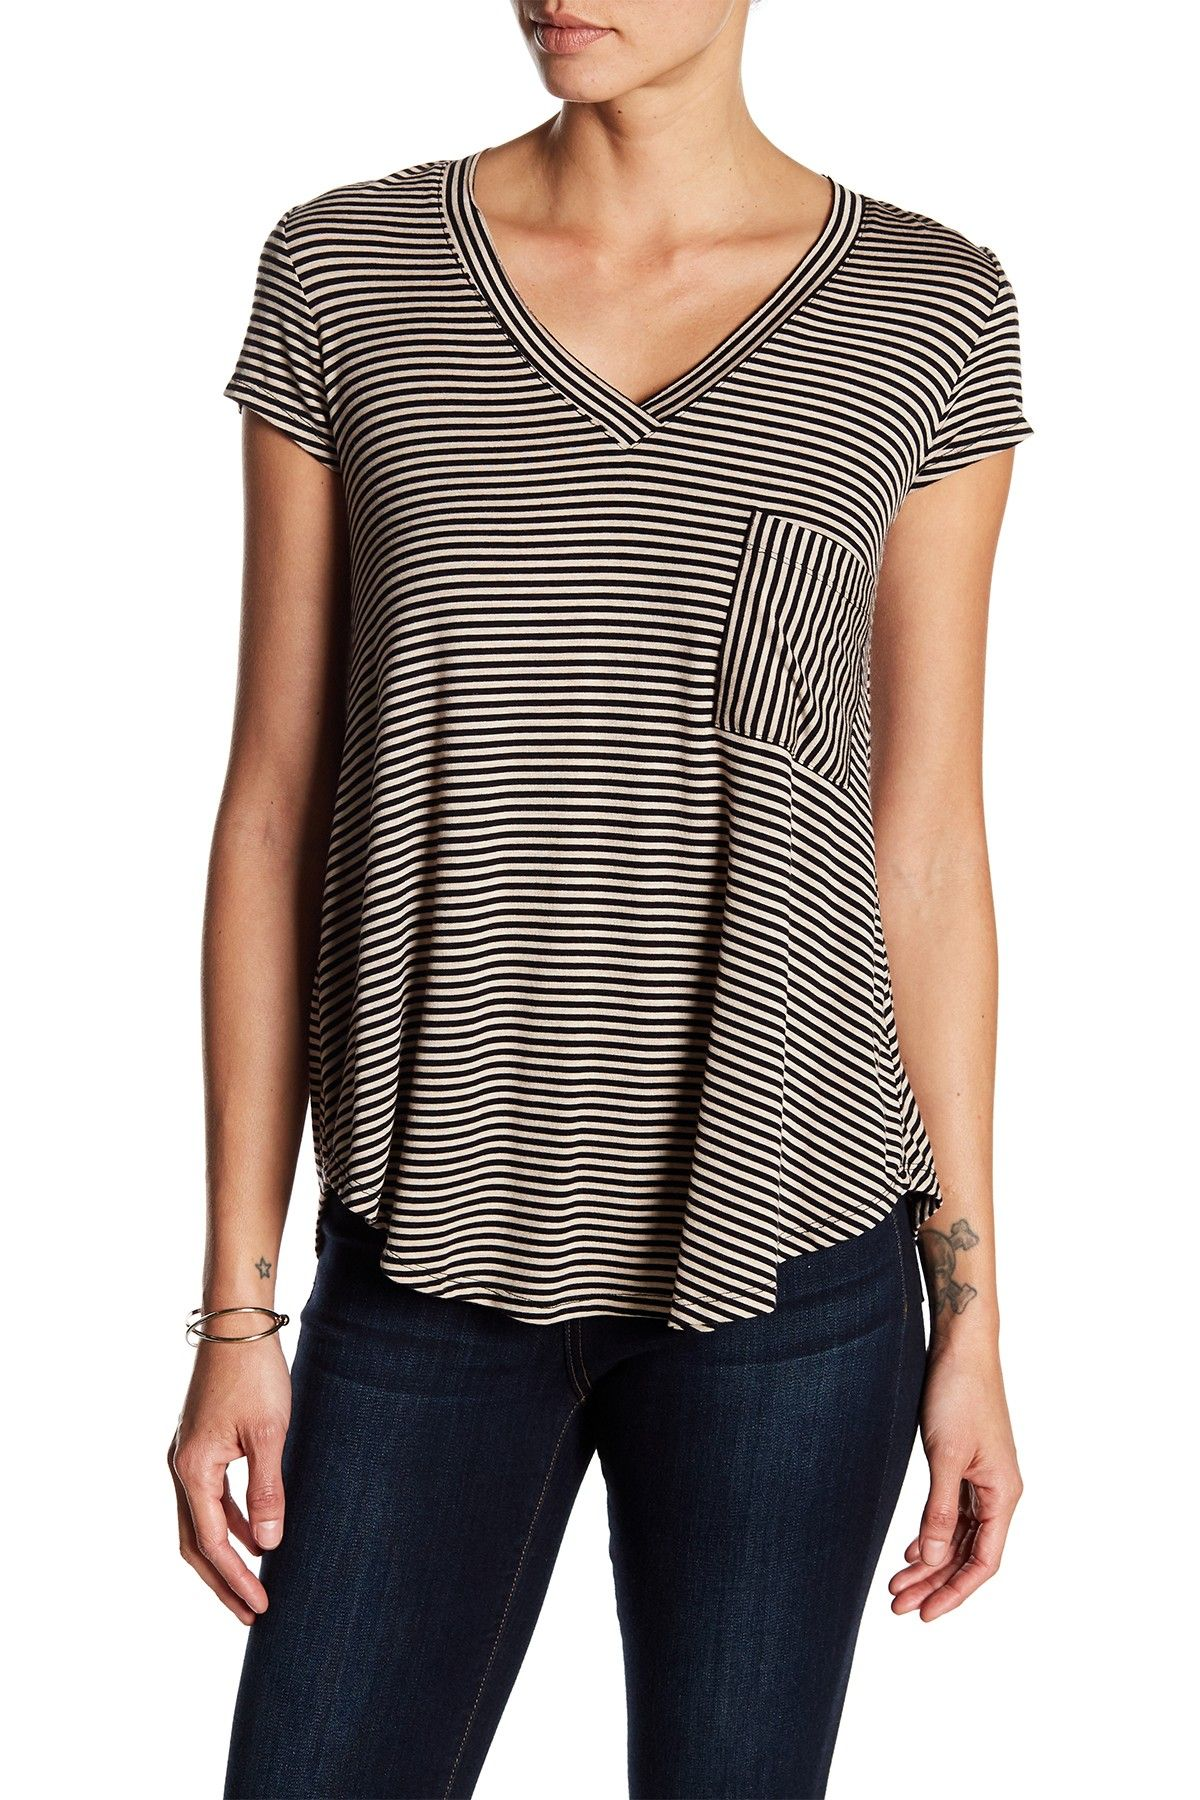 839c39d9b479c Striped V-Neck Tee by H By Bordeaux on  nordstrom rack